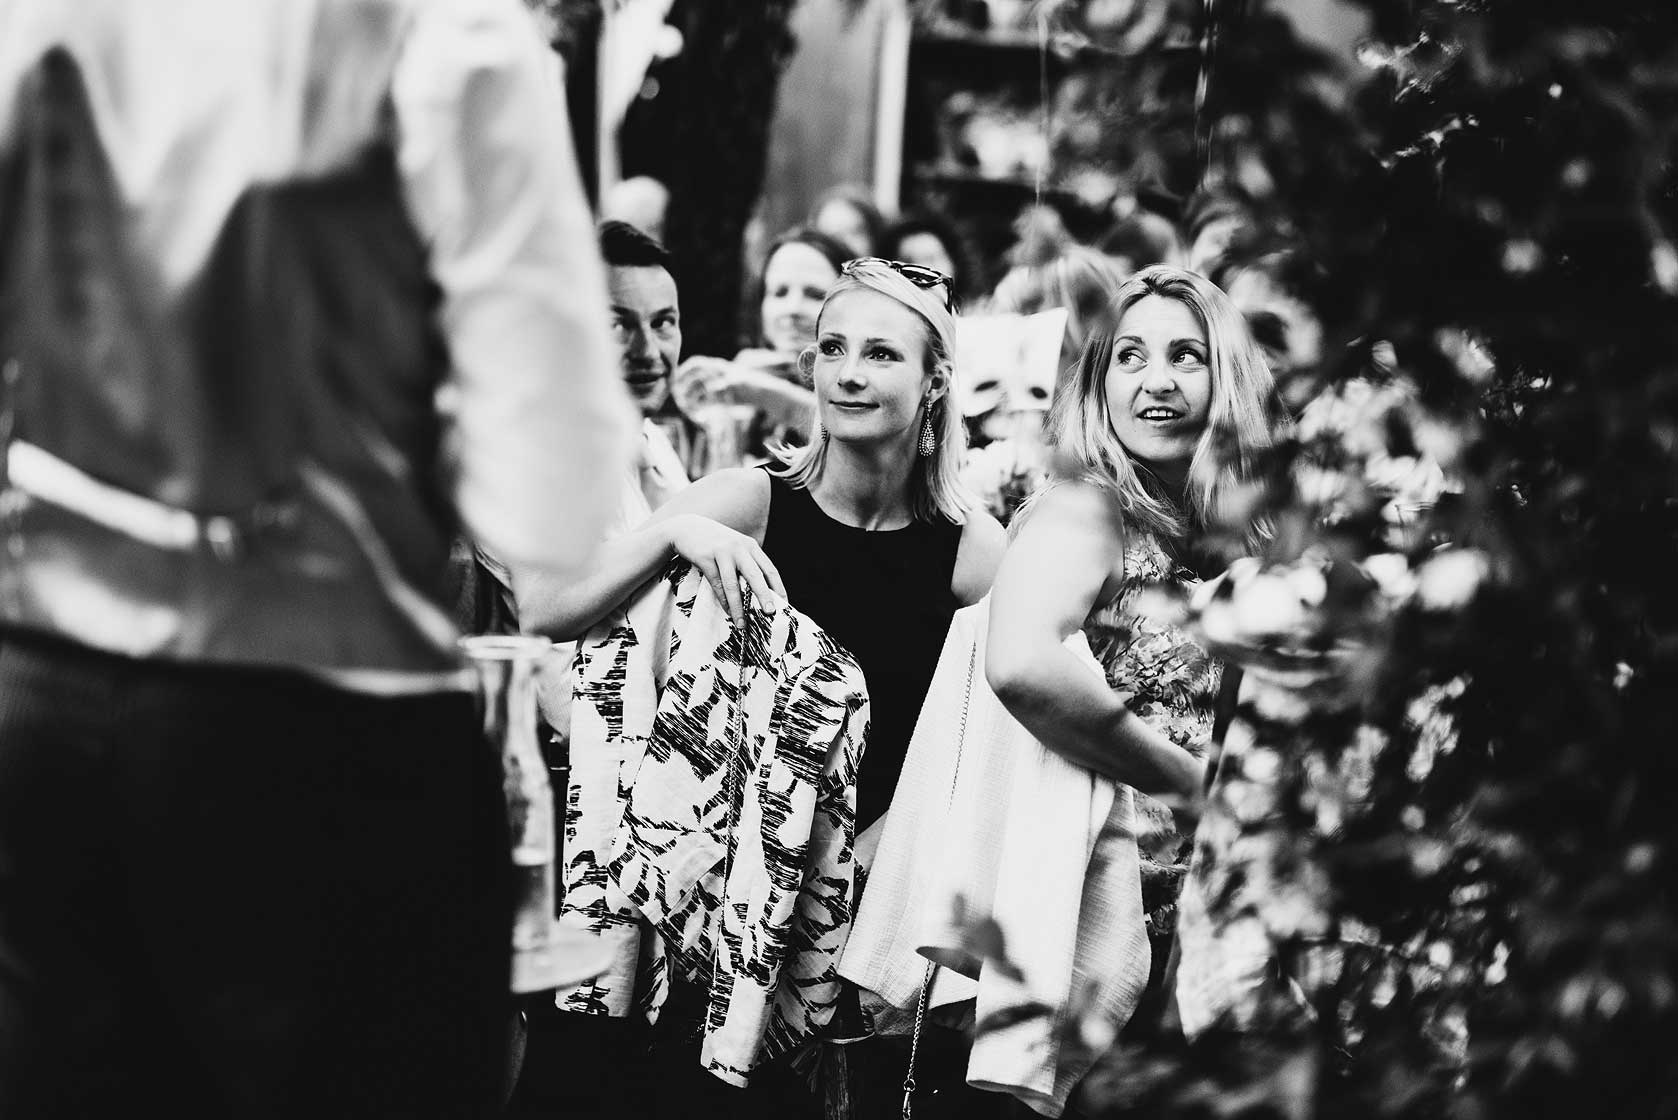 Reportage Wedding Photography at Petersham Nurseries